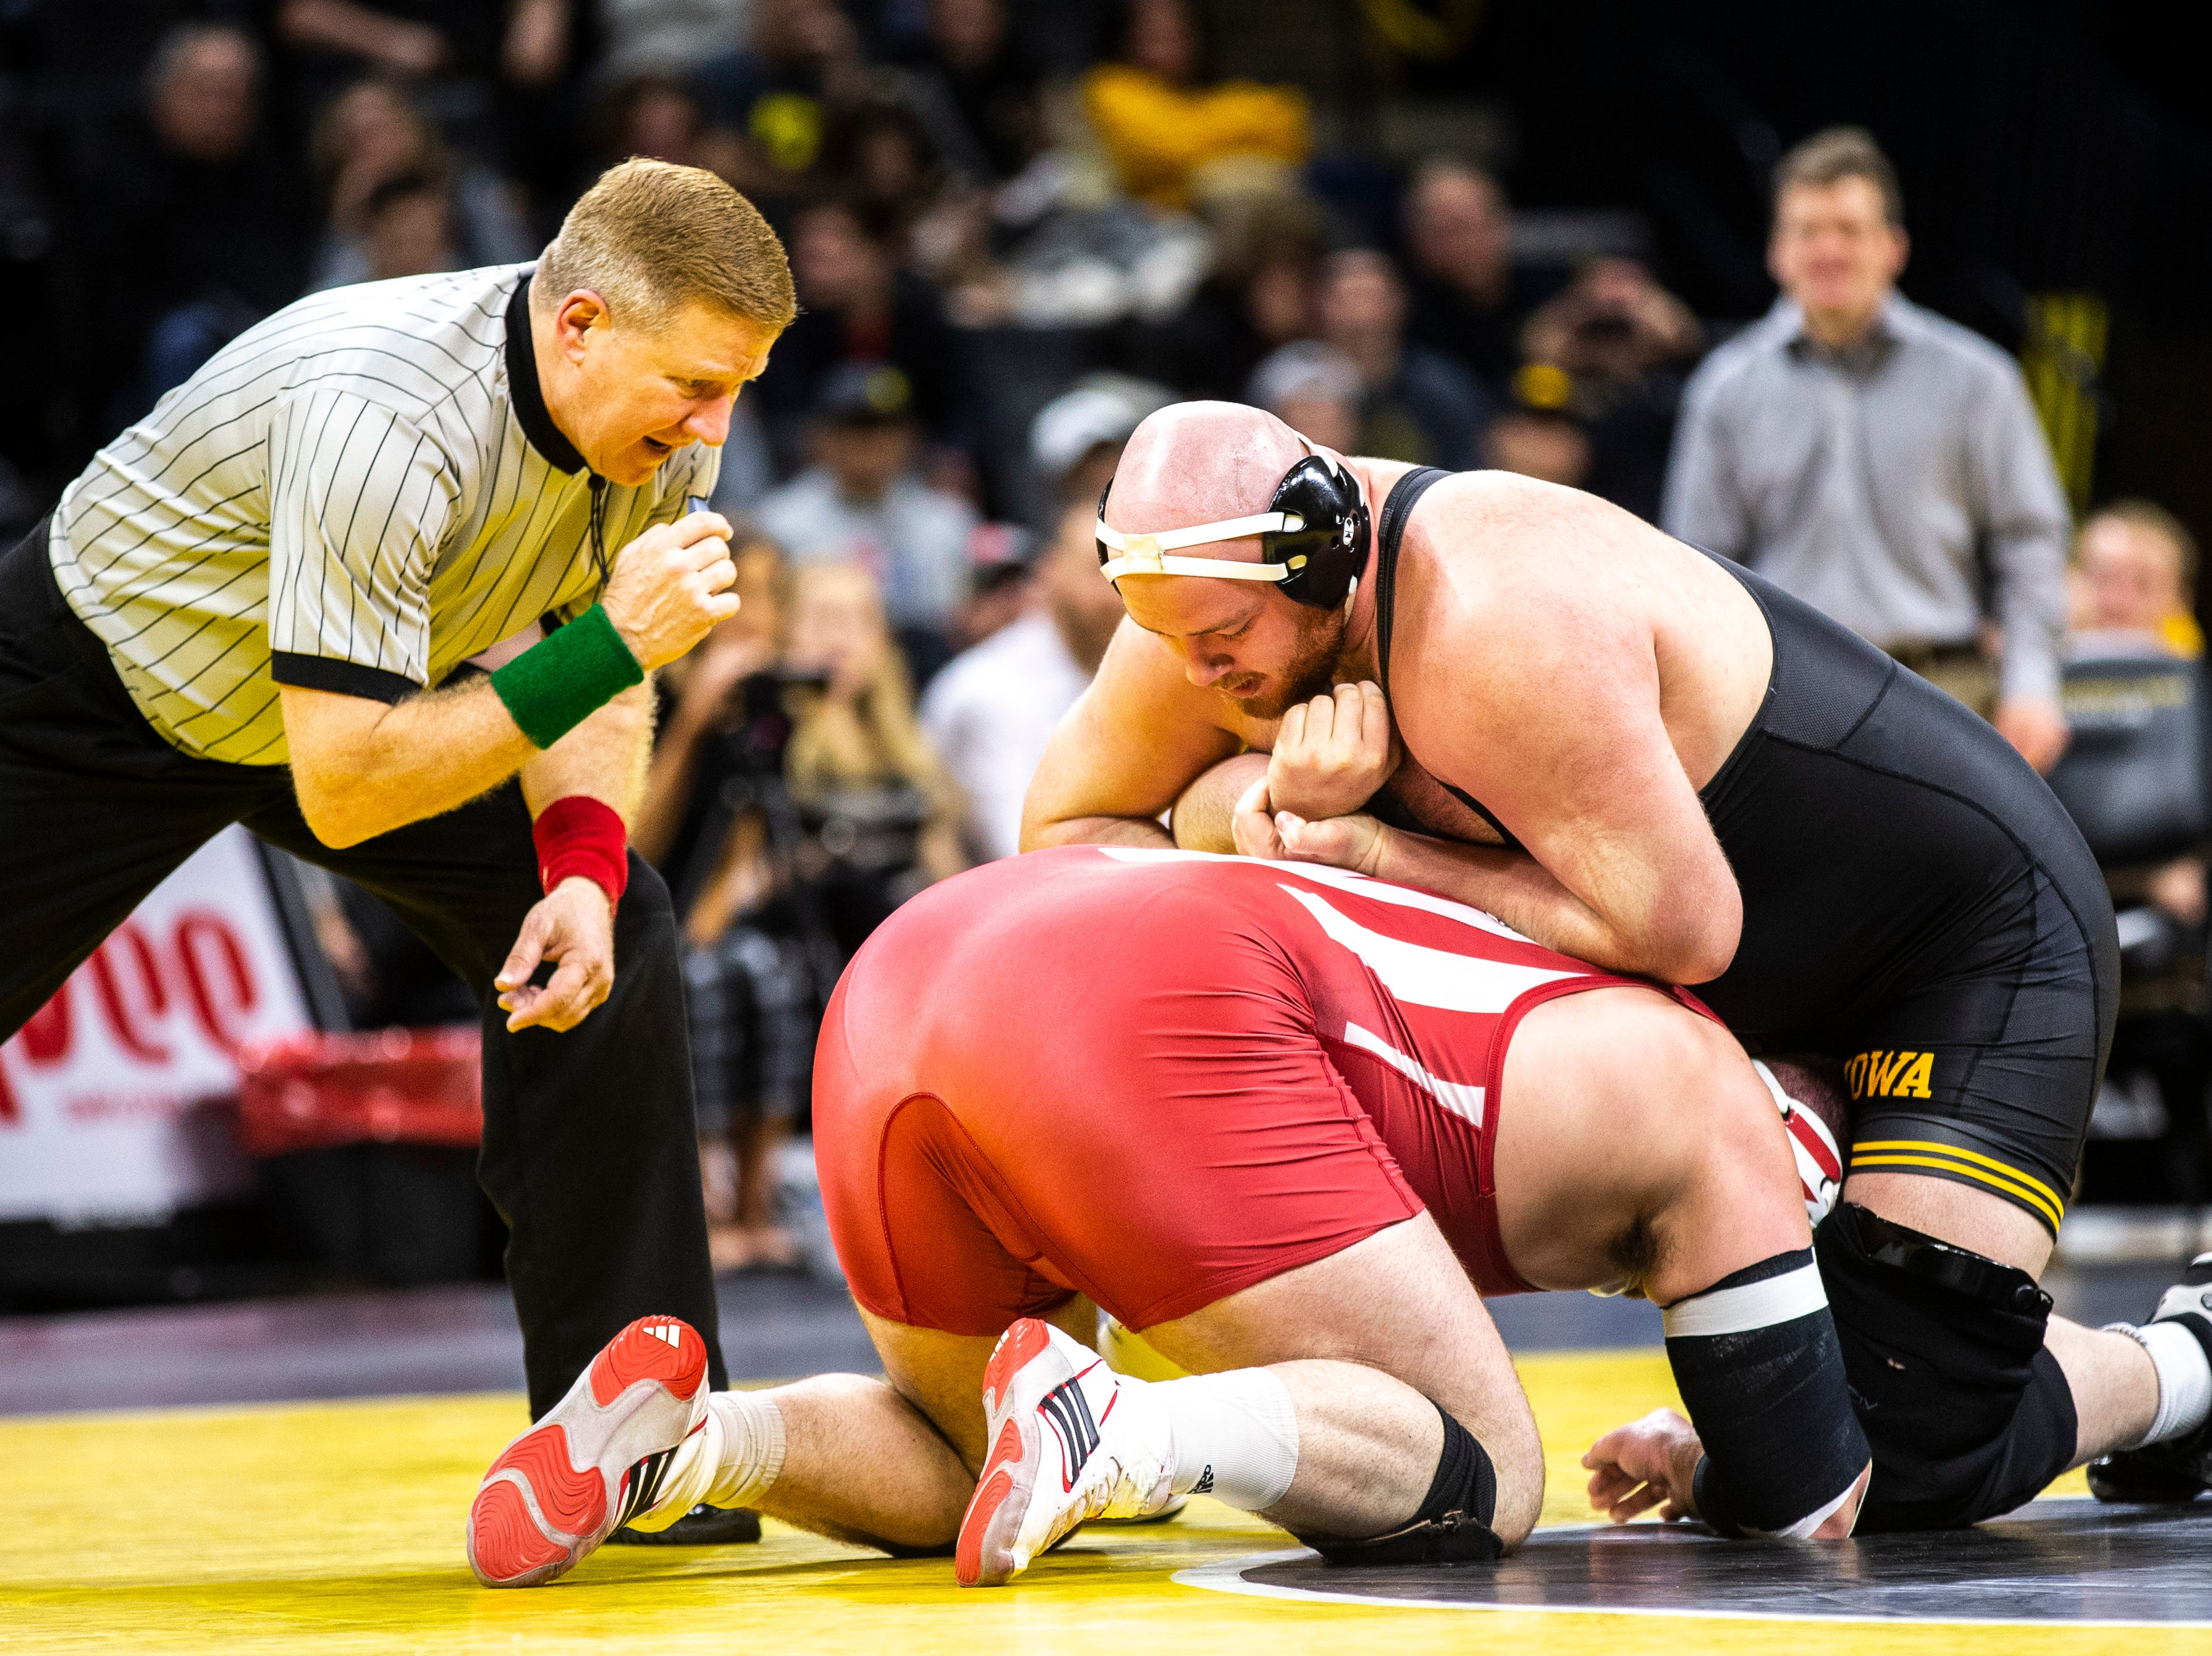 Iowa's Sam Stoll, right, wrestels Indiana's Fletcher Miller at 285 during a NCAA Big Ten Conference wrestling dual on Friday, Feb. 15, 2019 at Carver-Hawkeye Arena in Iowa City, Iowa.